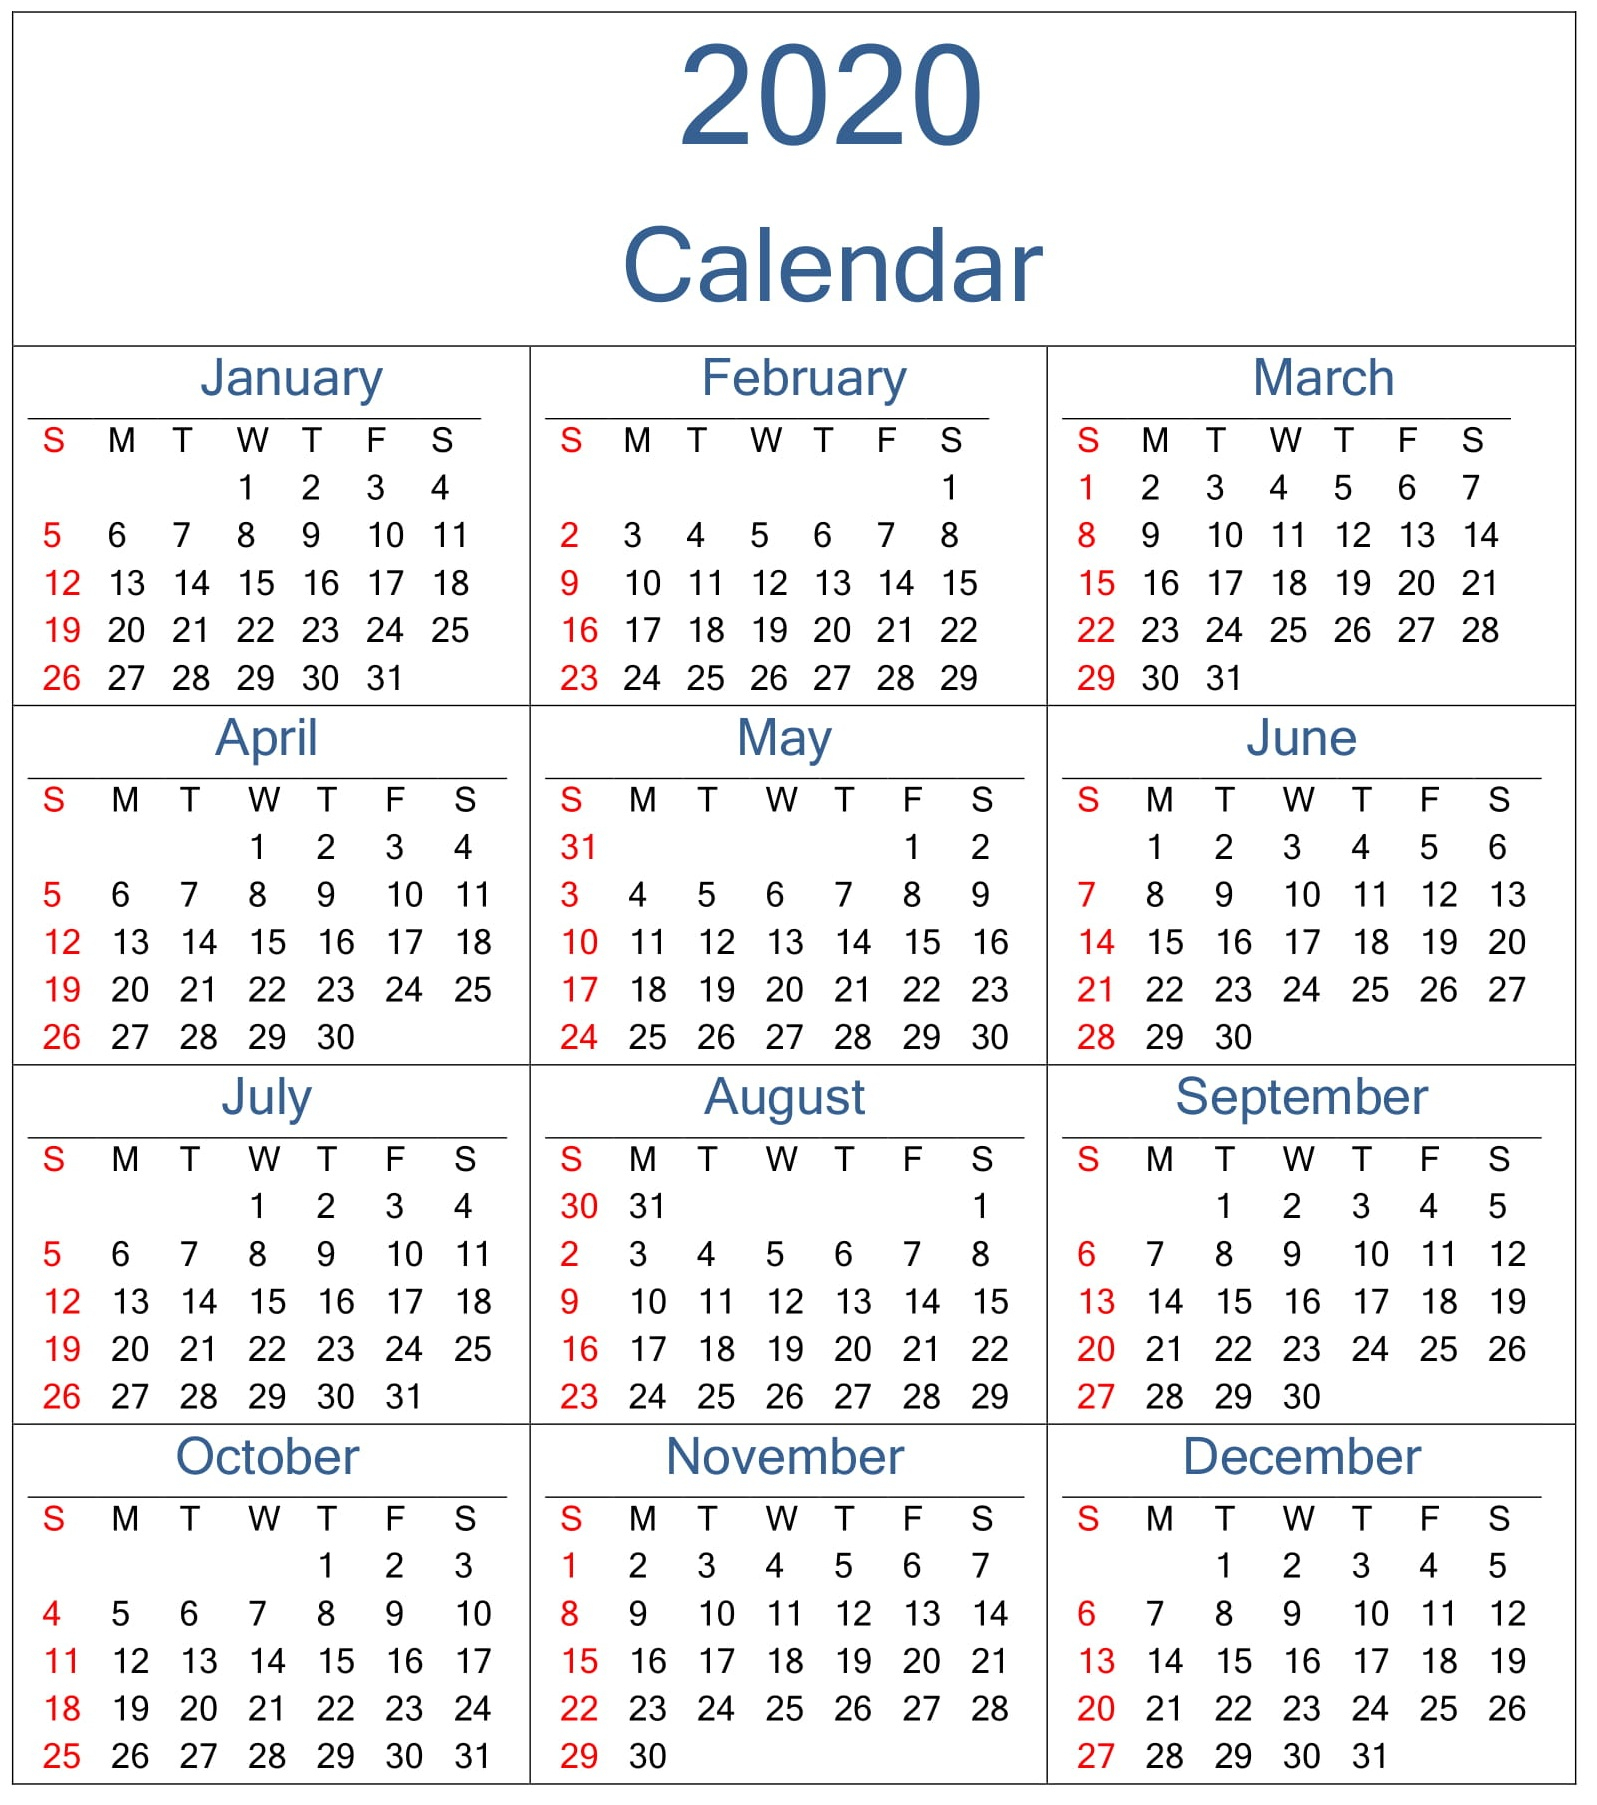 Yearly 2020 Calendar Excel Template - Latest Printable with regard to 2020 Calendar By Month And Week Number Excel